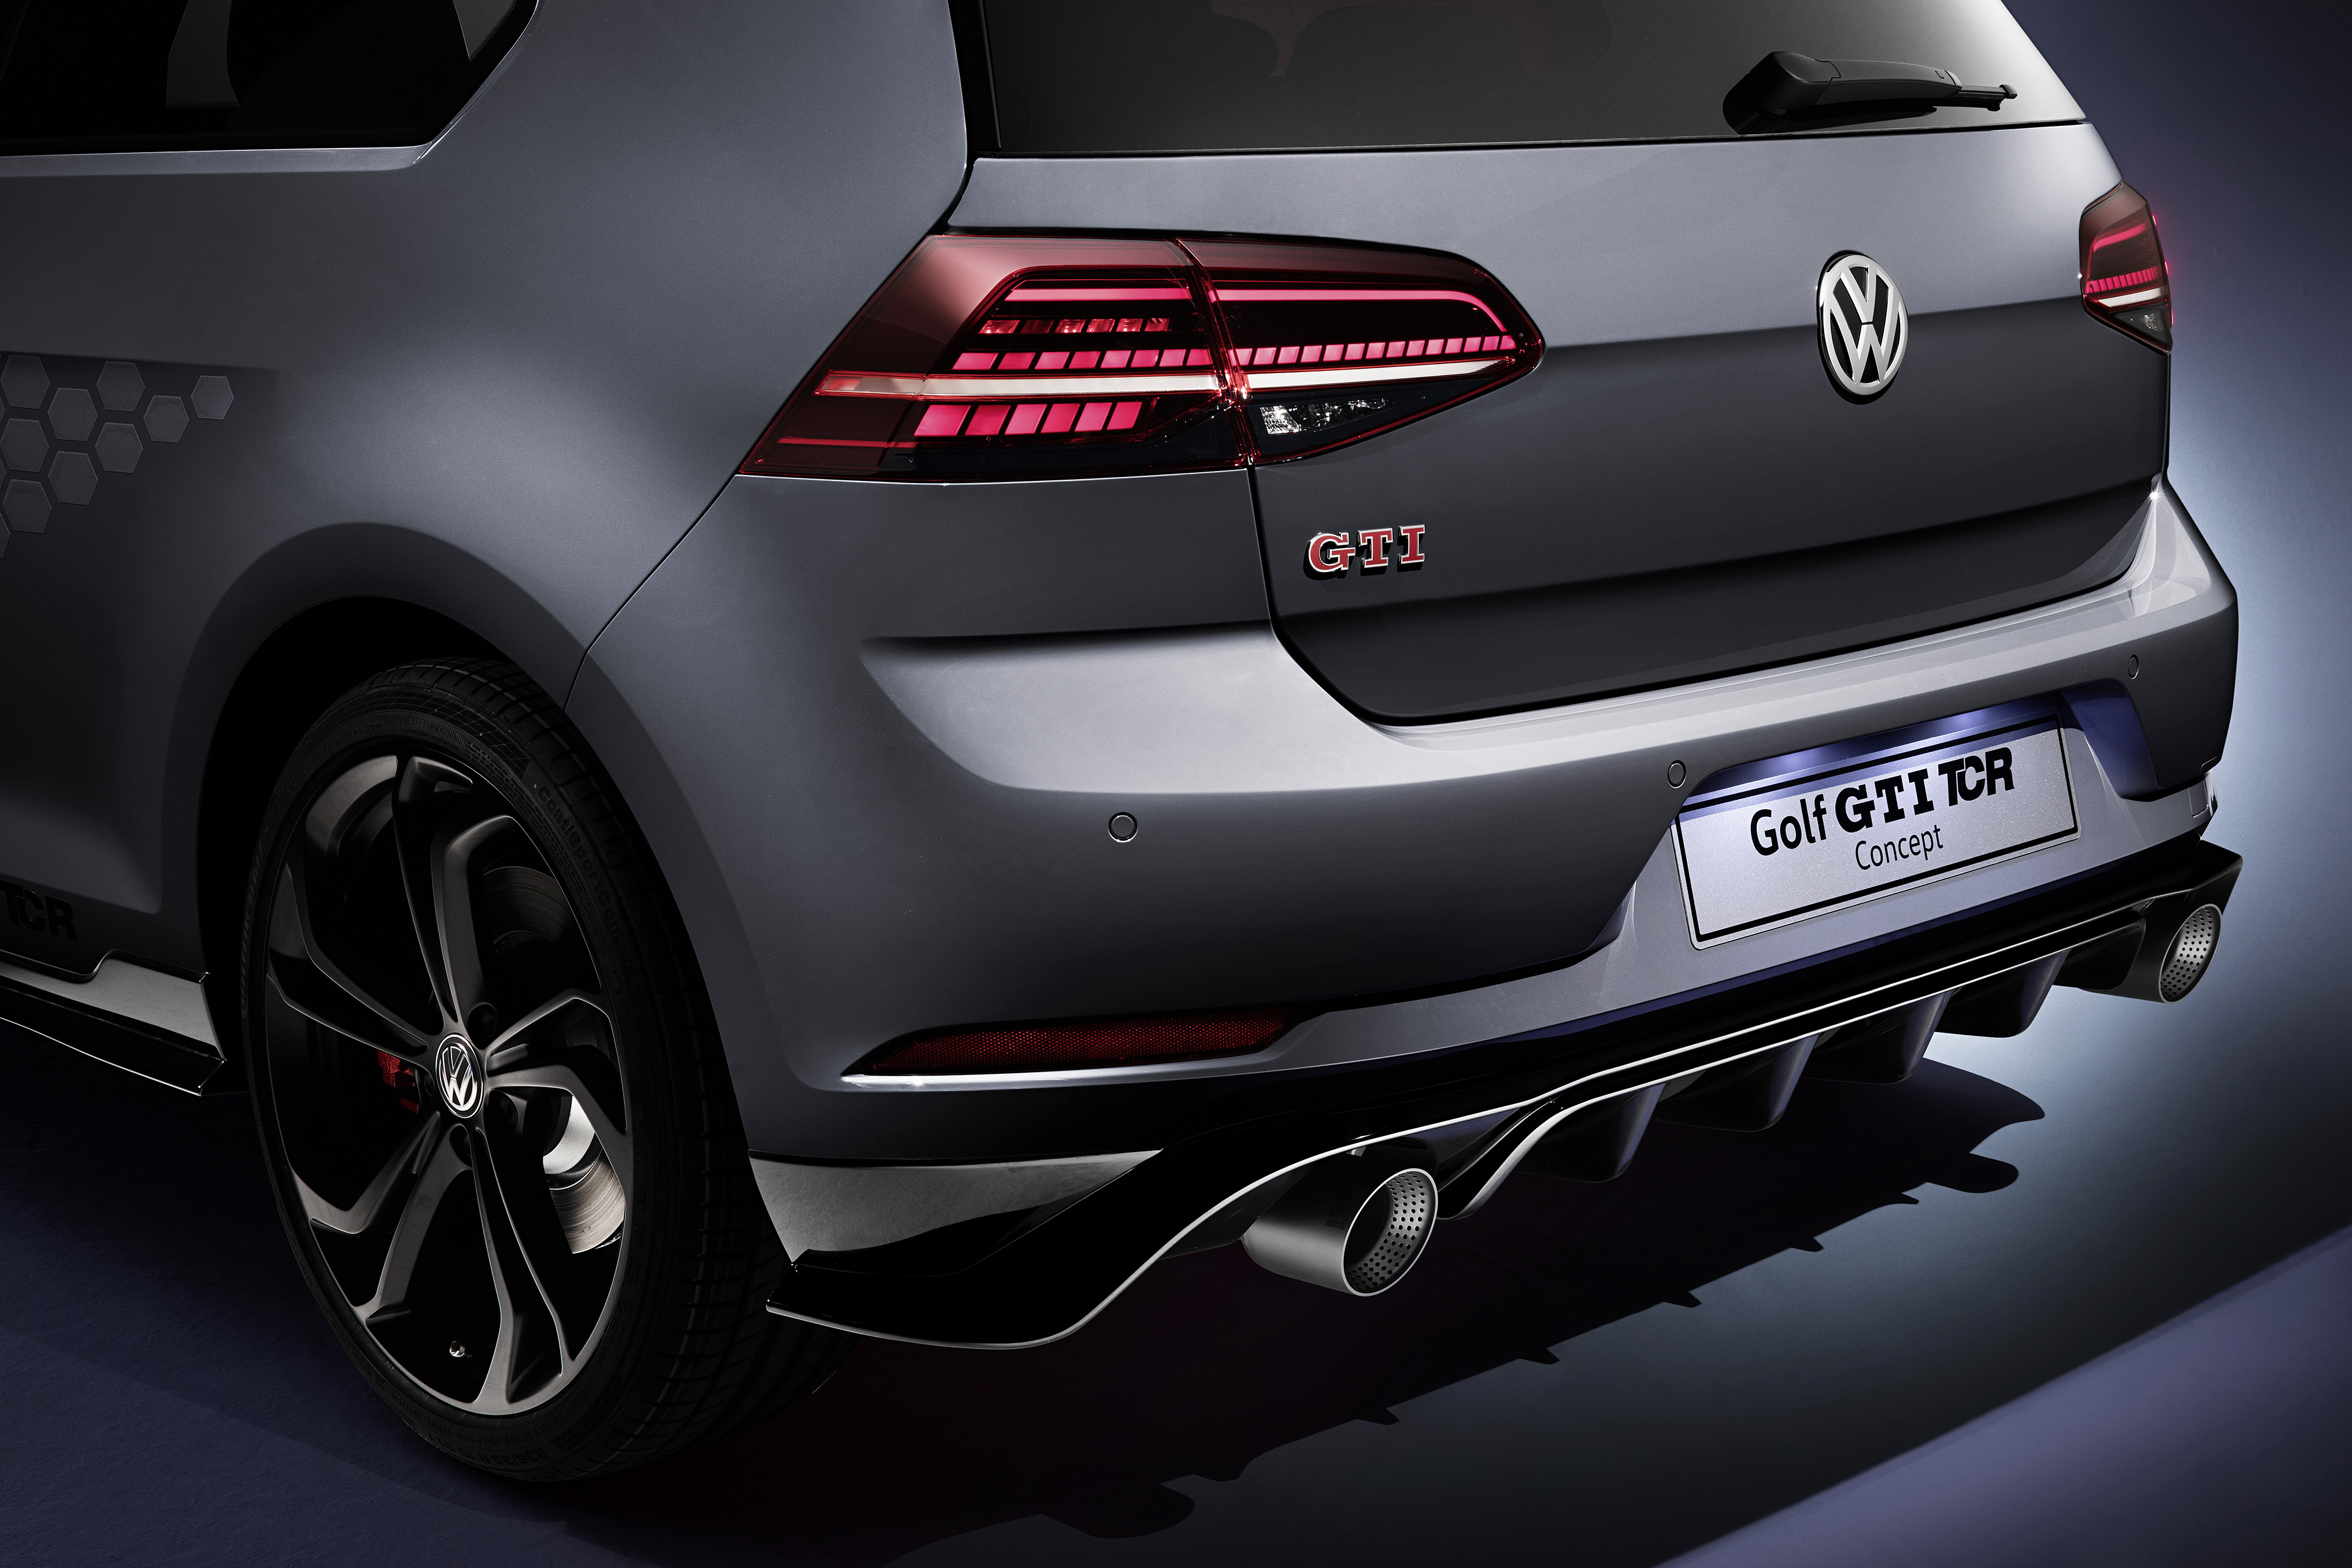 Golf GTI TCR Concept 6